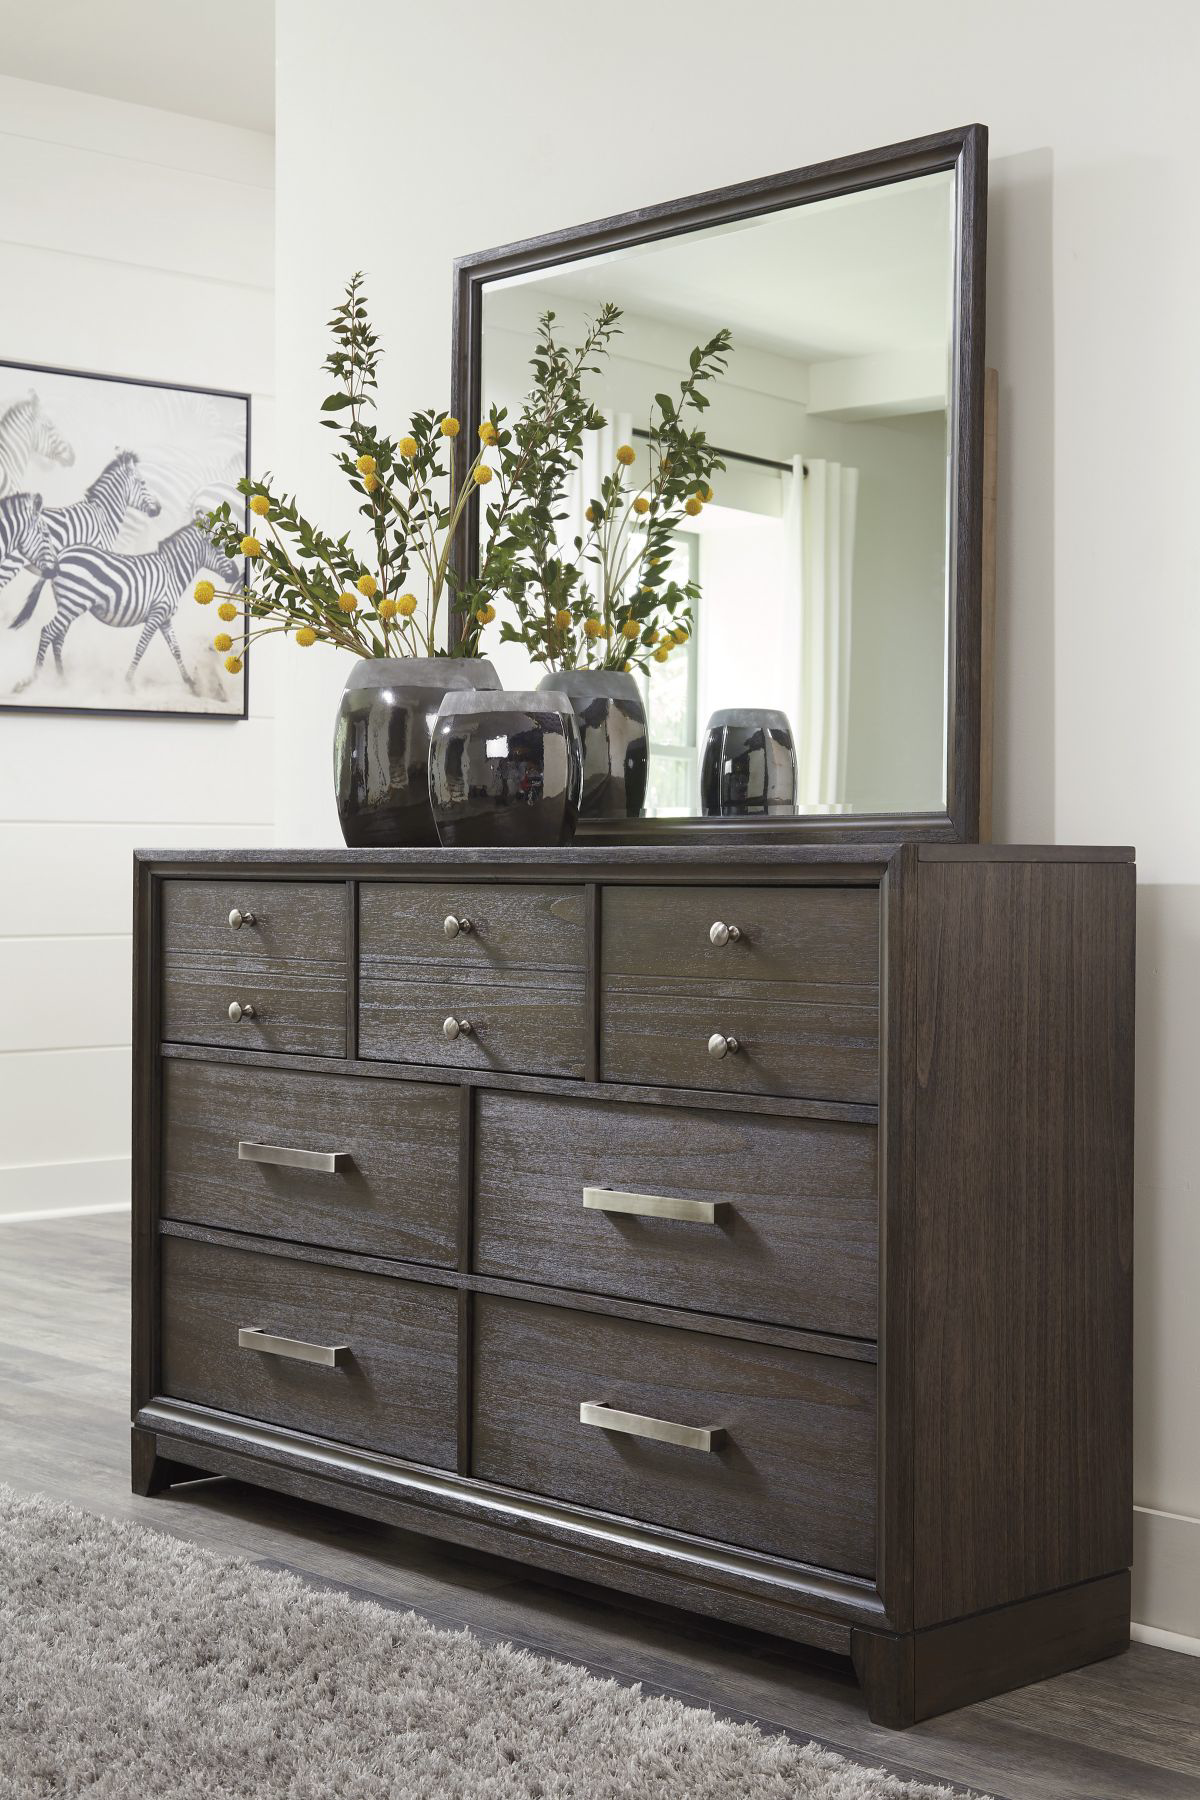 Picture of Brueban Dresser & Mirror